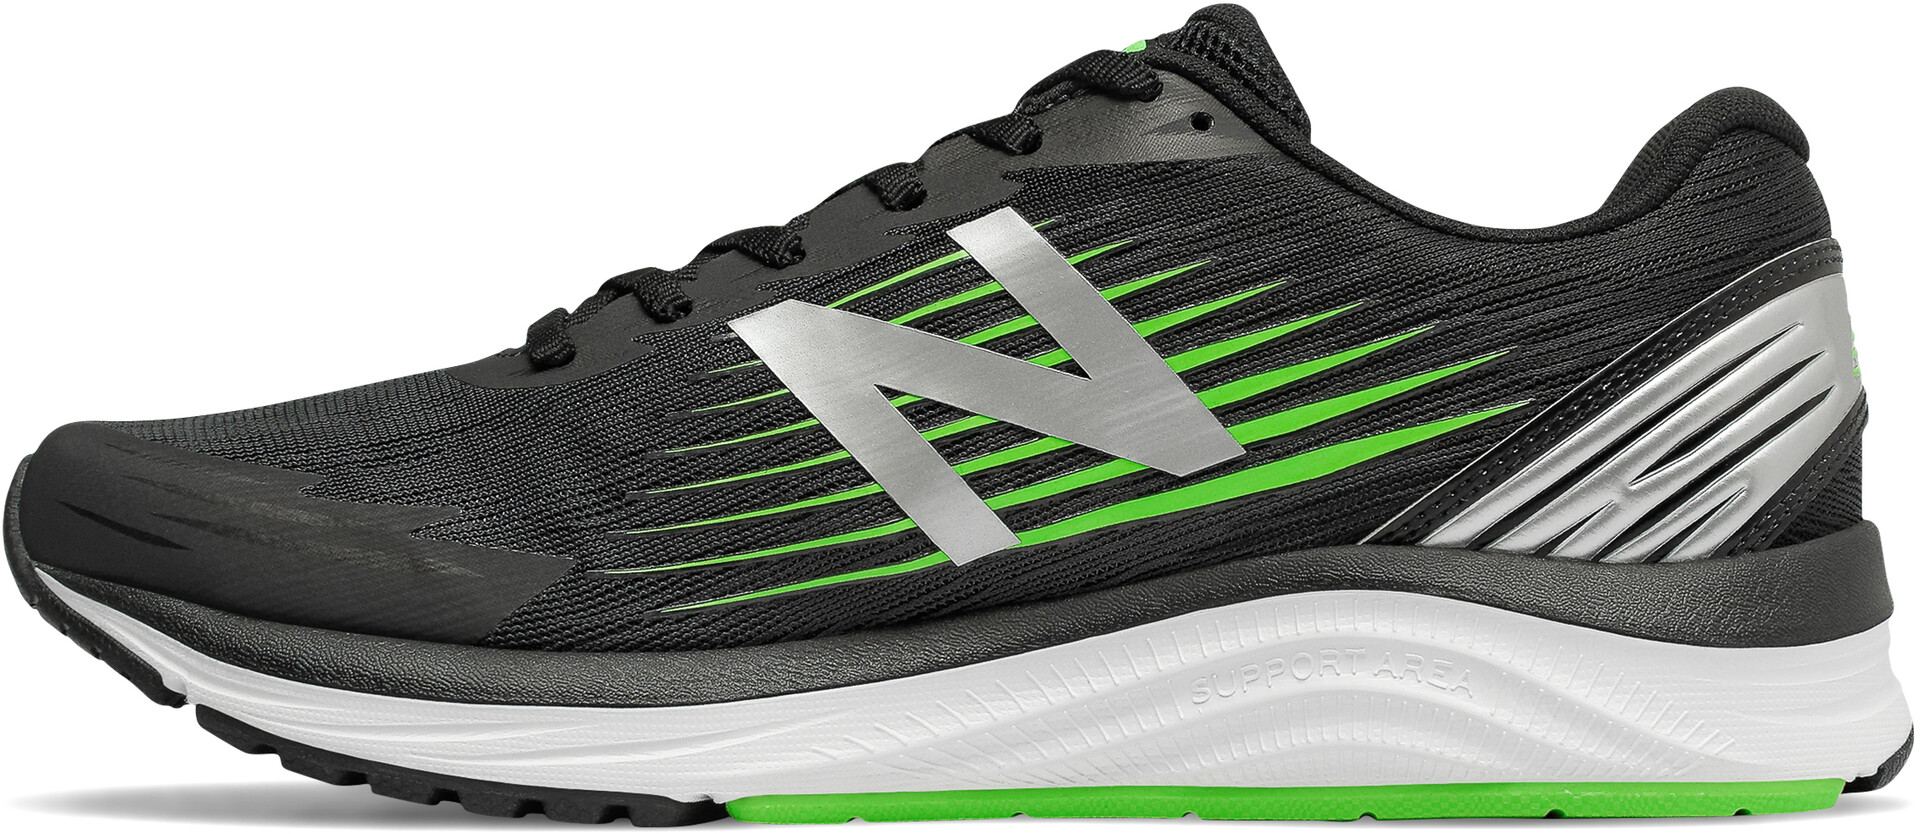 new balance sneakers heren groen